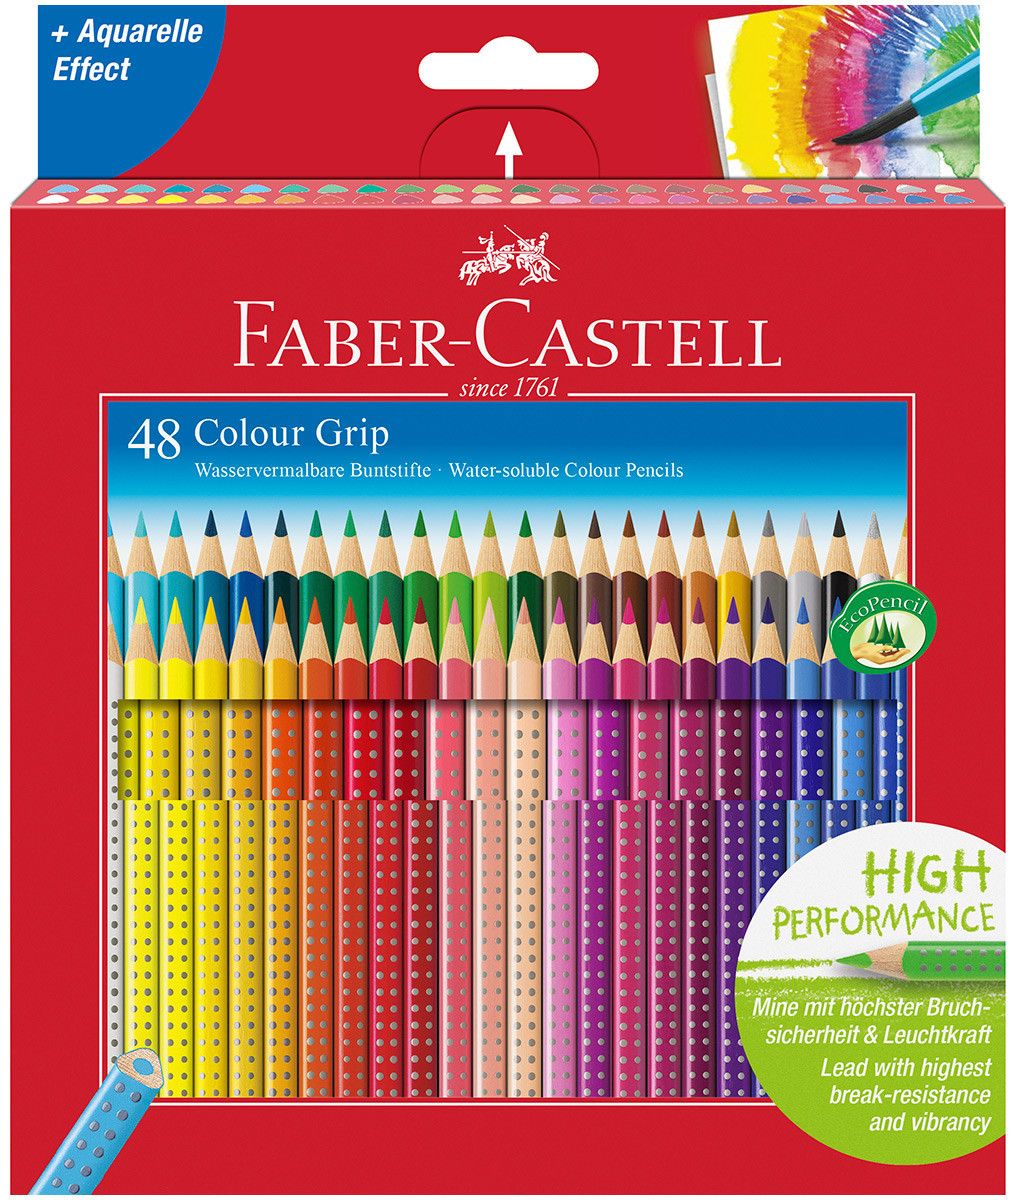 Faber-Castell Colour Grip Pencils - Assorted Colours (Pack of 48)